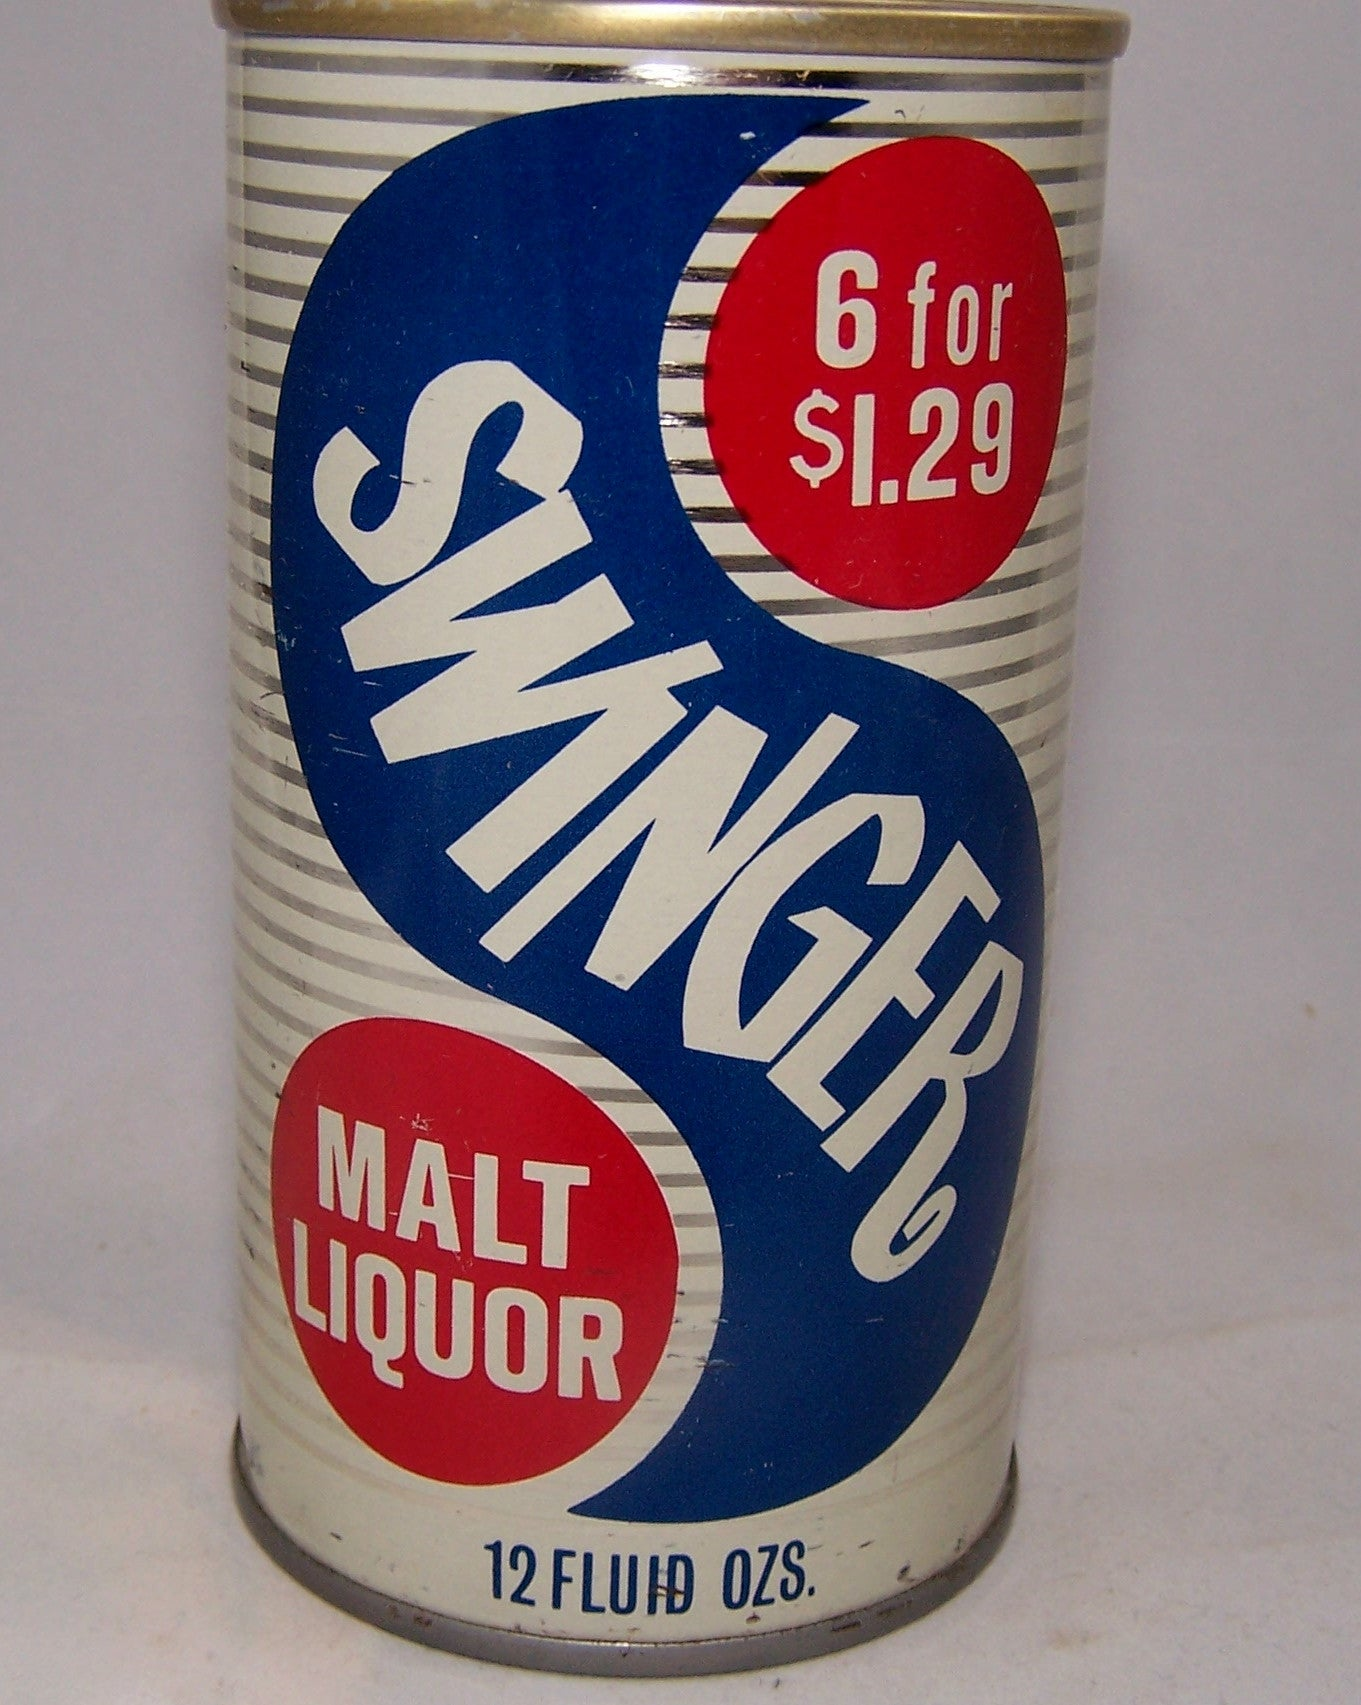 Swinger Malt Liquor USBC II 128-28, Grade 1 to 1/1+ Sold on 01/22/16